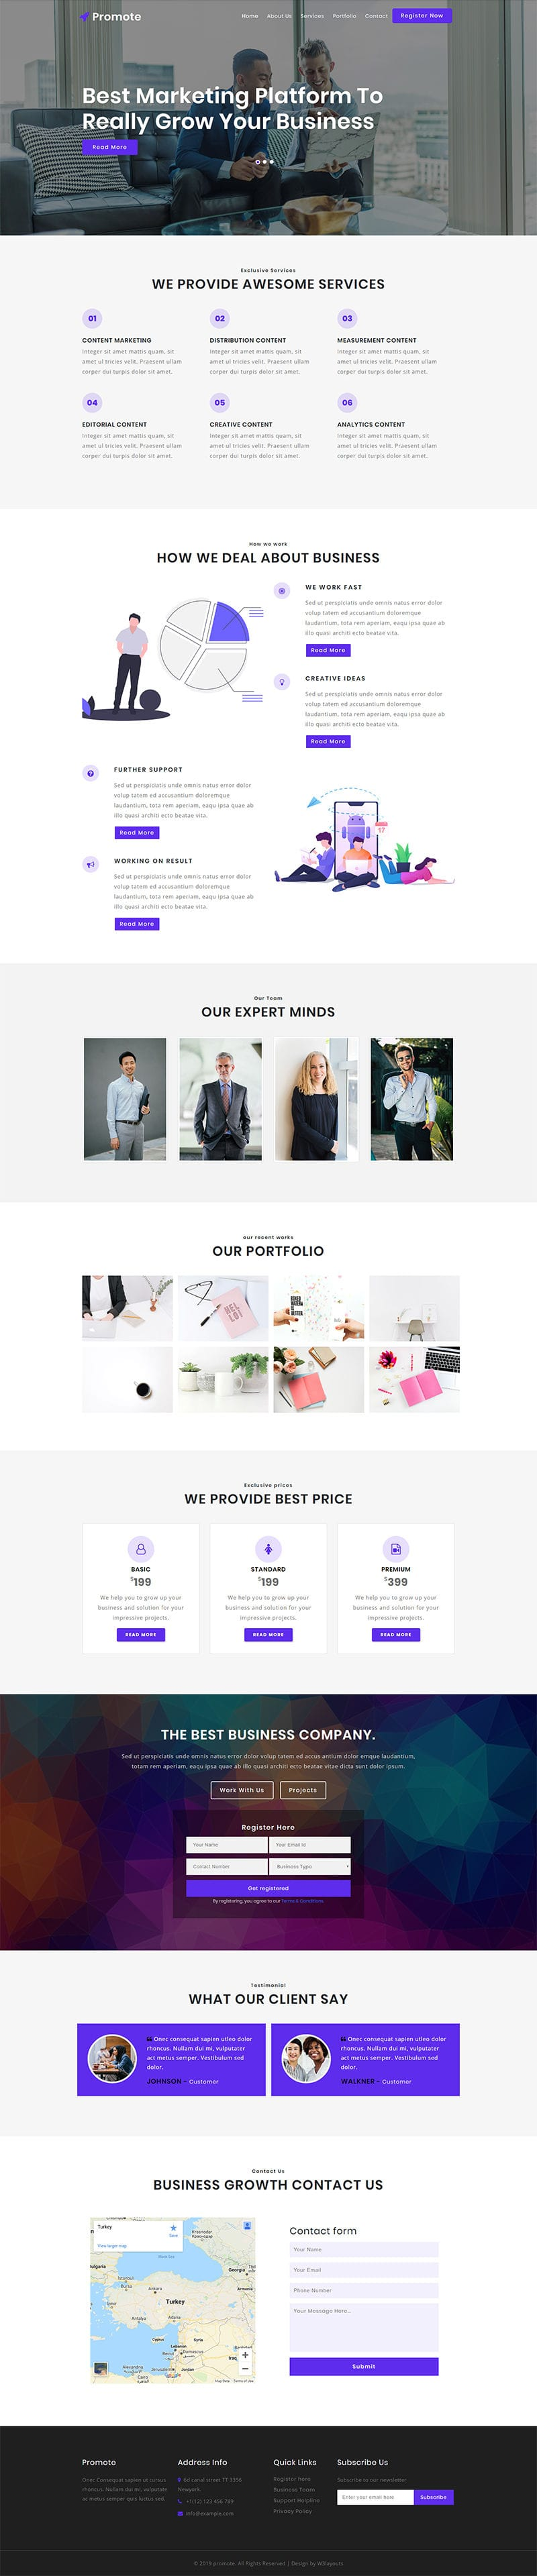 Promote, a Business category website template for corporate businesses. This HTML CSS website template is responsive and fully customizable..